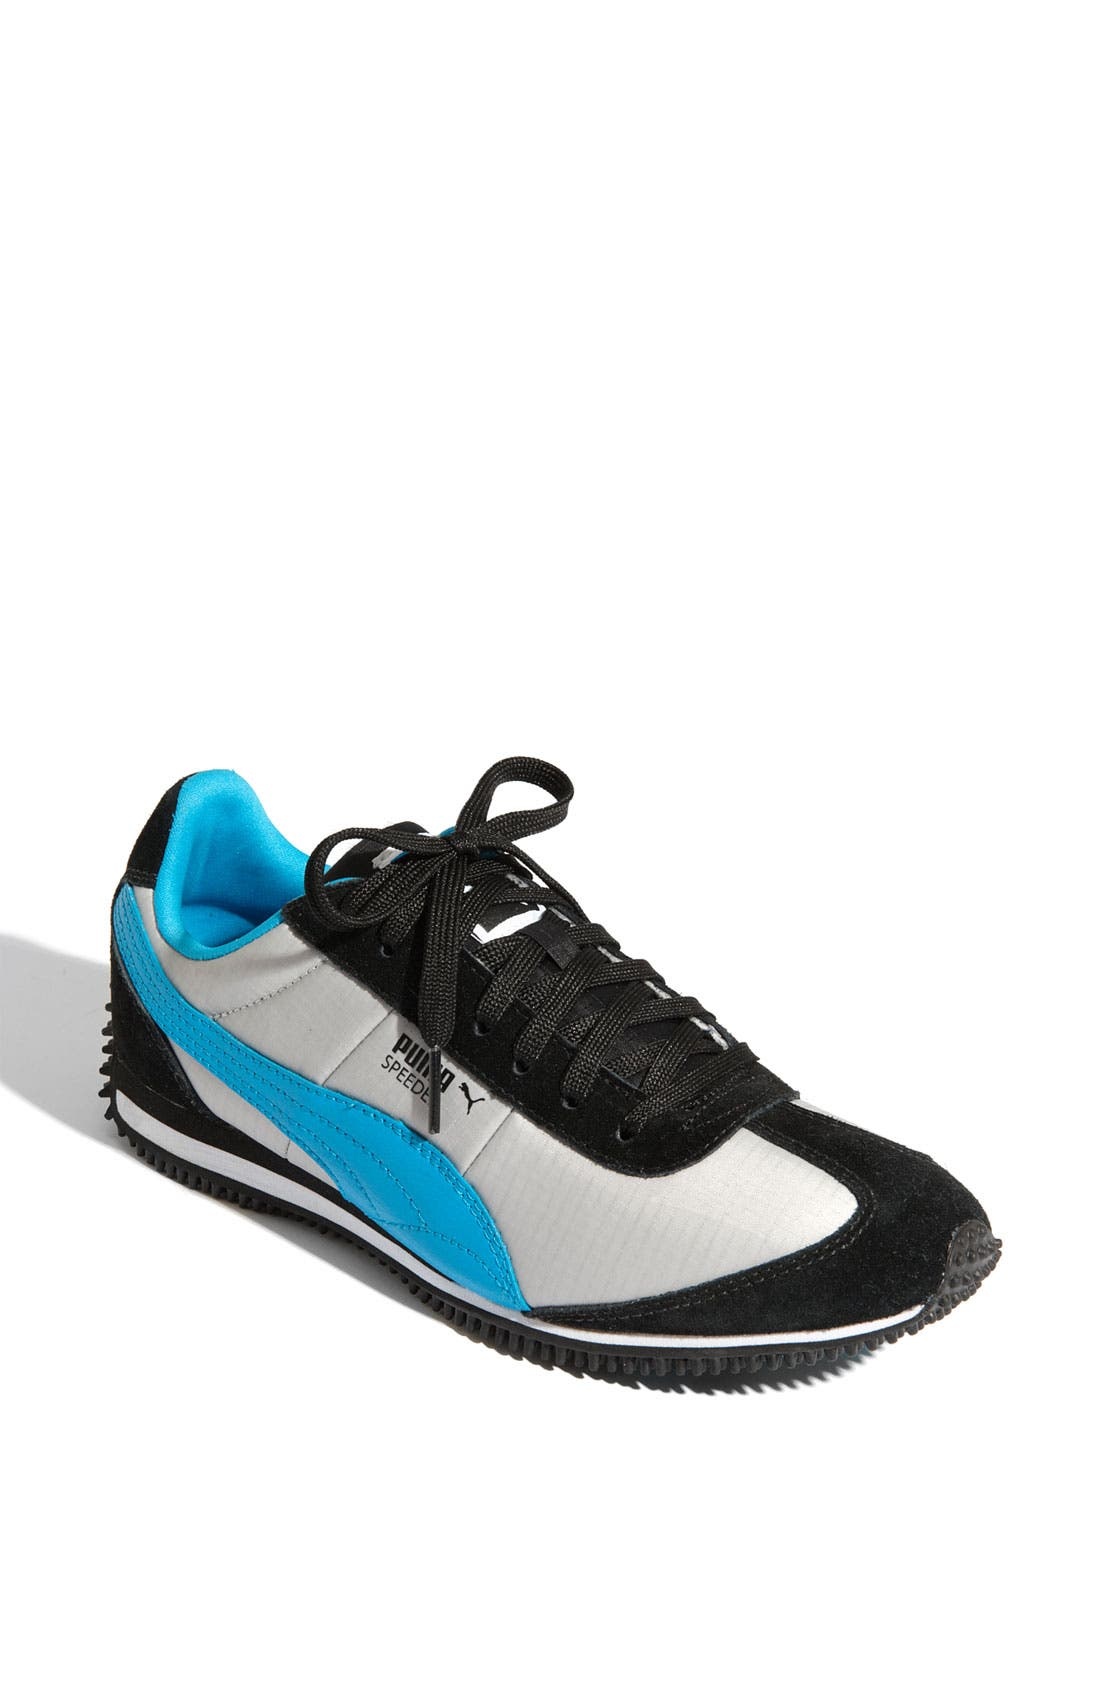 Alternate Image 1 Selected - PUMA 'Speeder' Sneaker (Women)